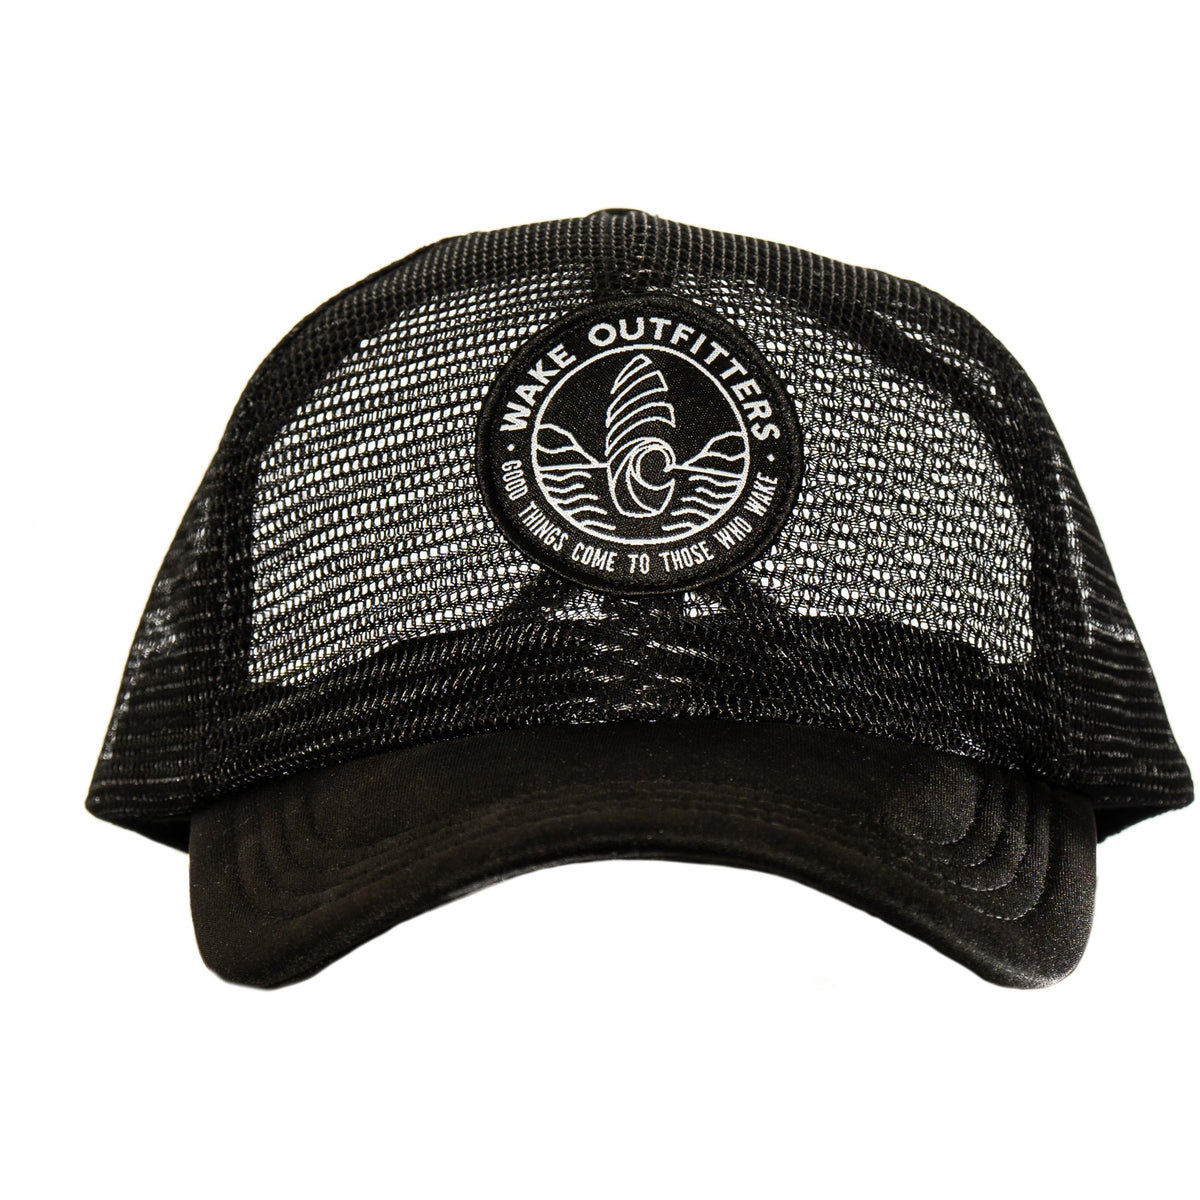 Wake outfitters Full Mesh Hat